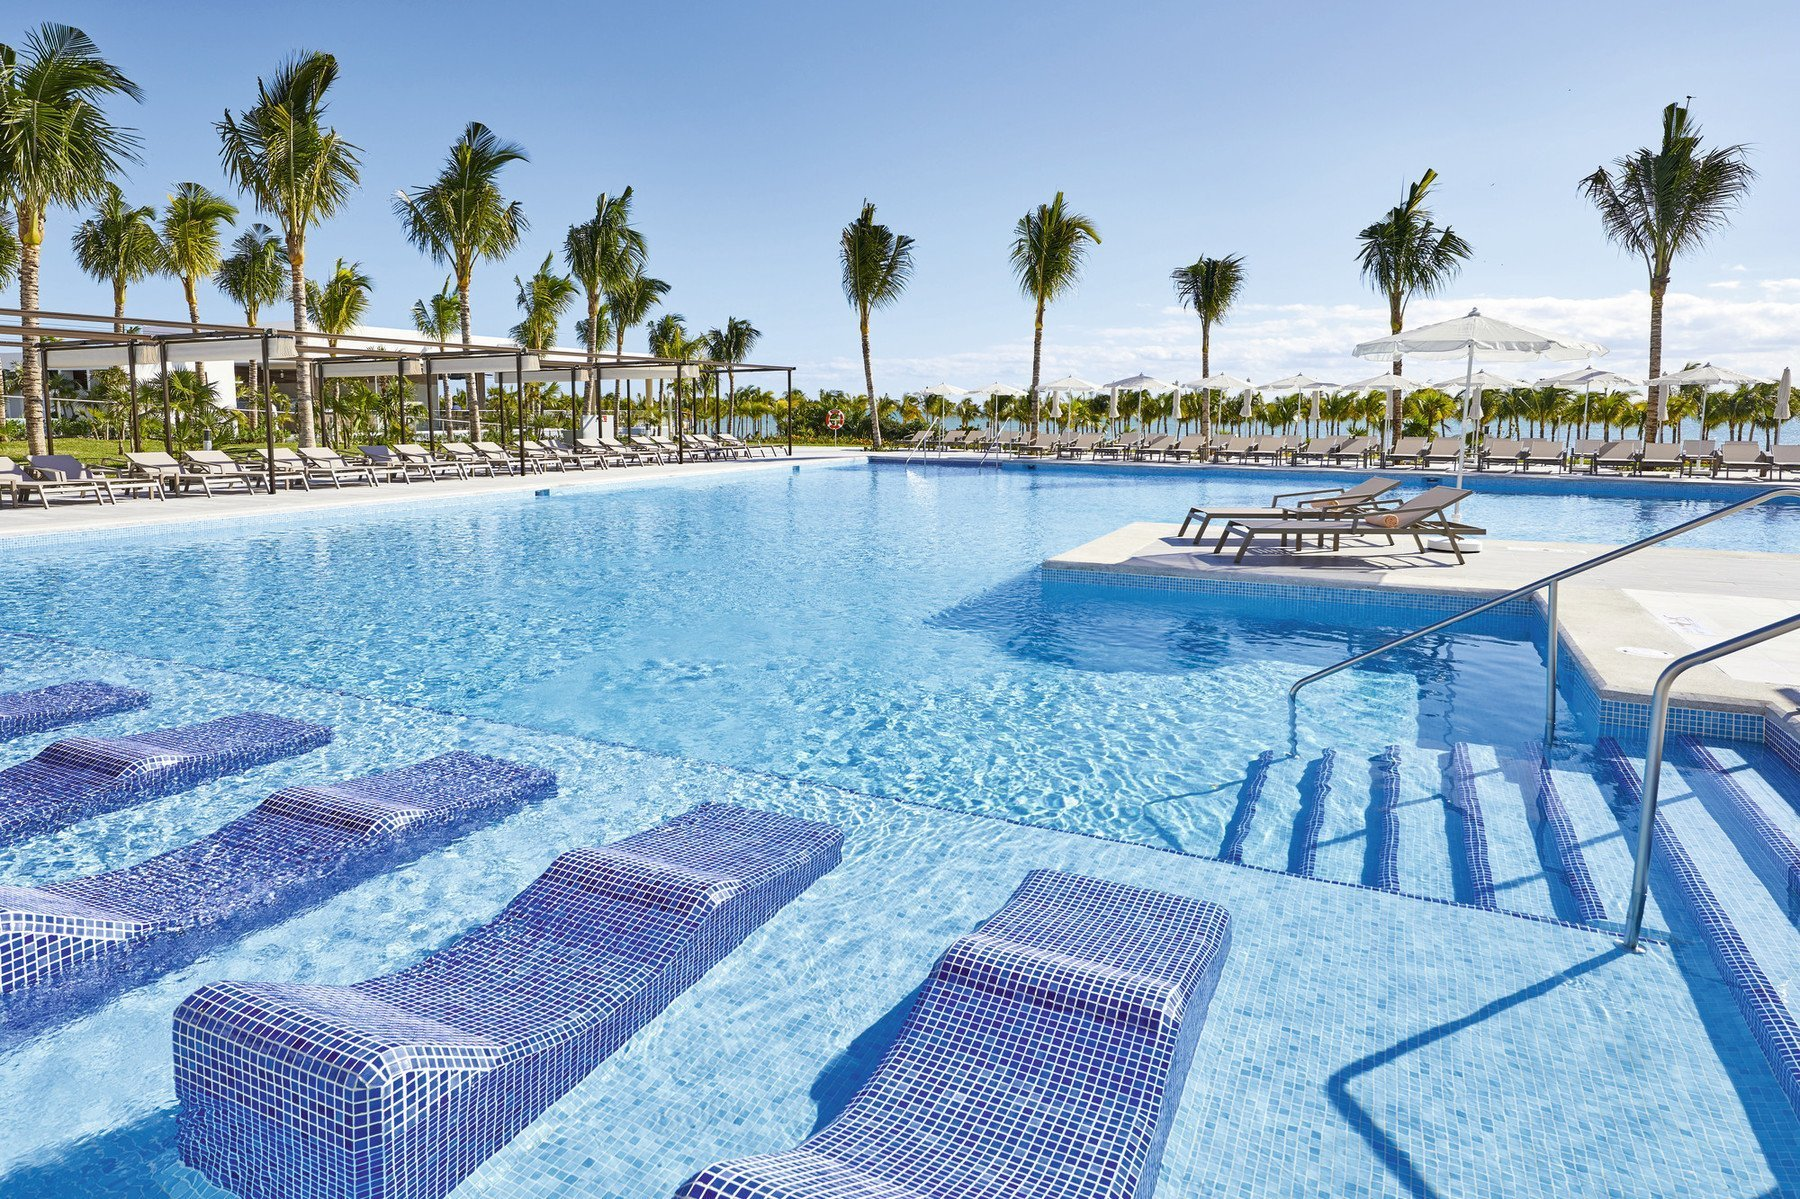 riu palace costa mujeres pool